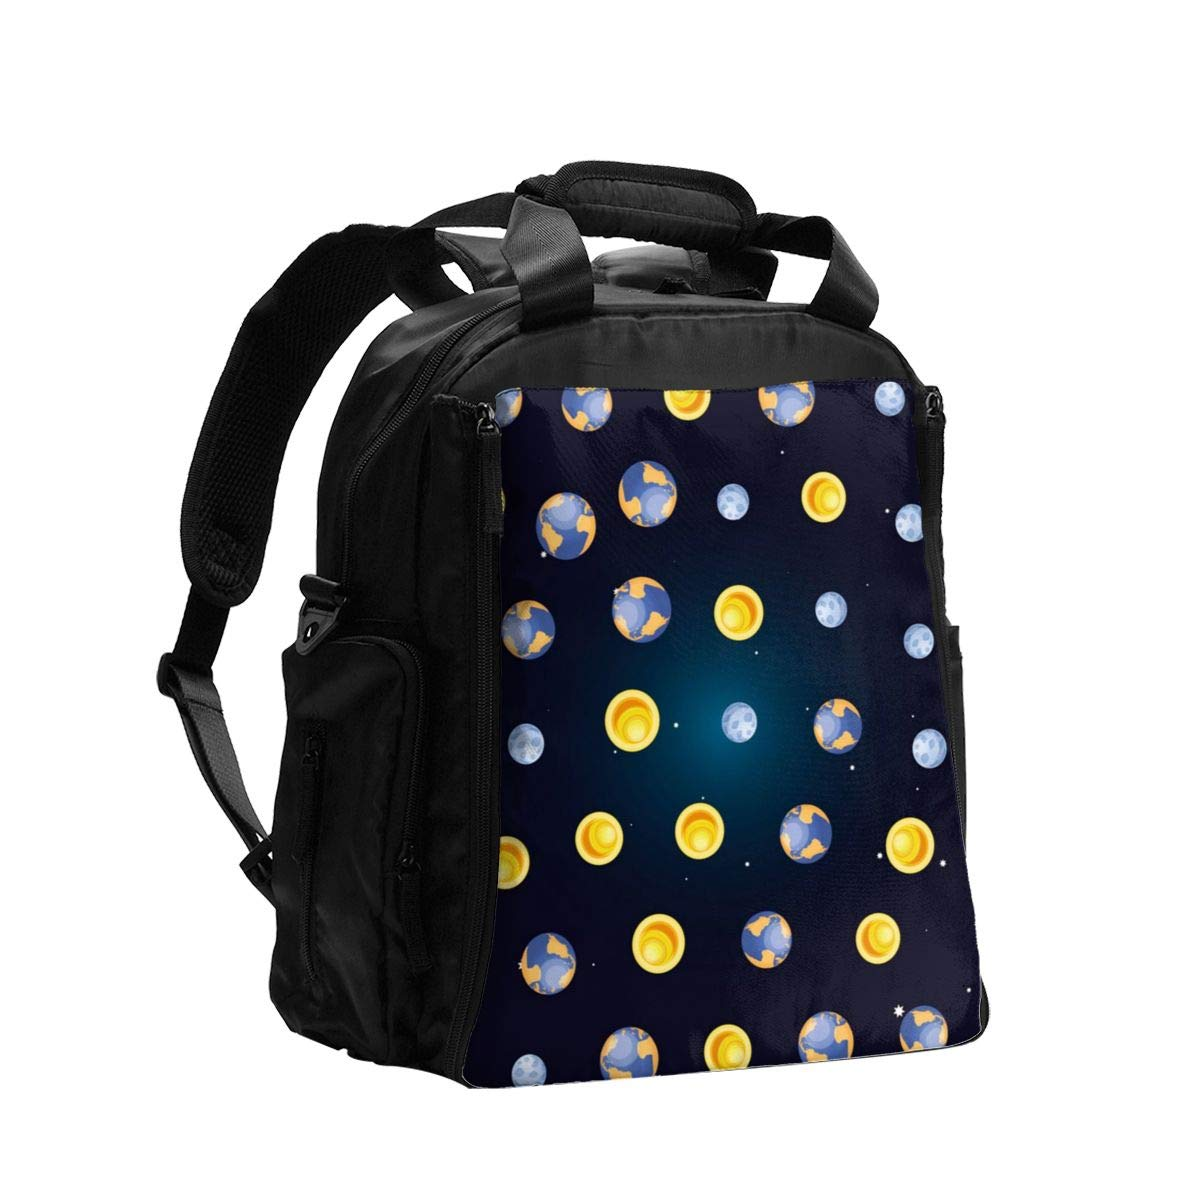 Earth Planet with Moon and Sun Diaper Bag Backpack Travel Backpack Maternity Baby Changing Bags